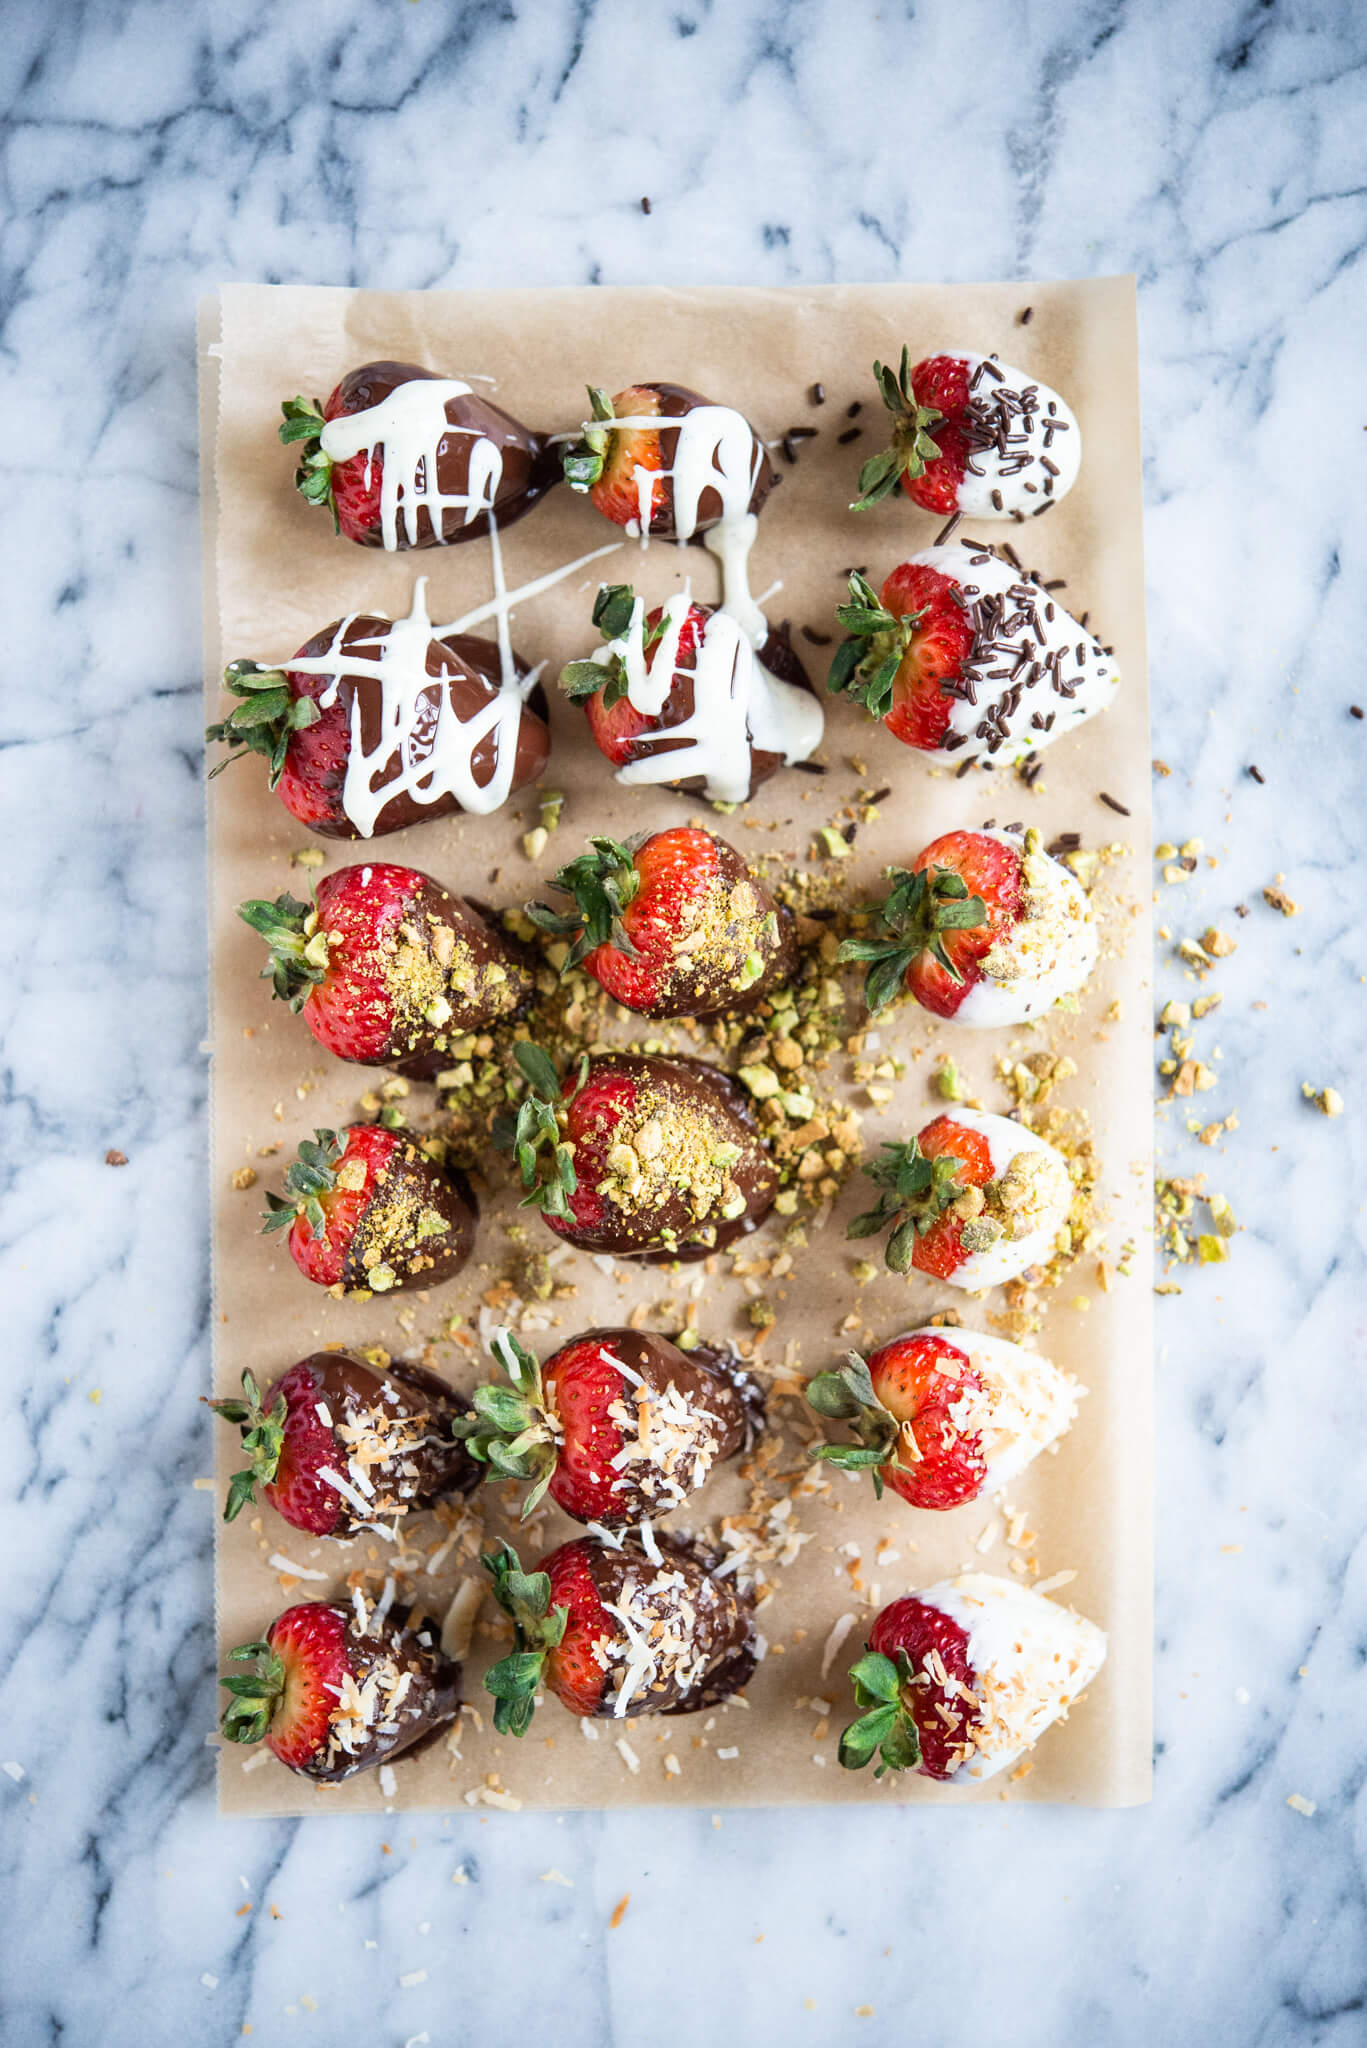 white and dark chocolate covered strawberries with different toppings on parchment paper on a marble surface